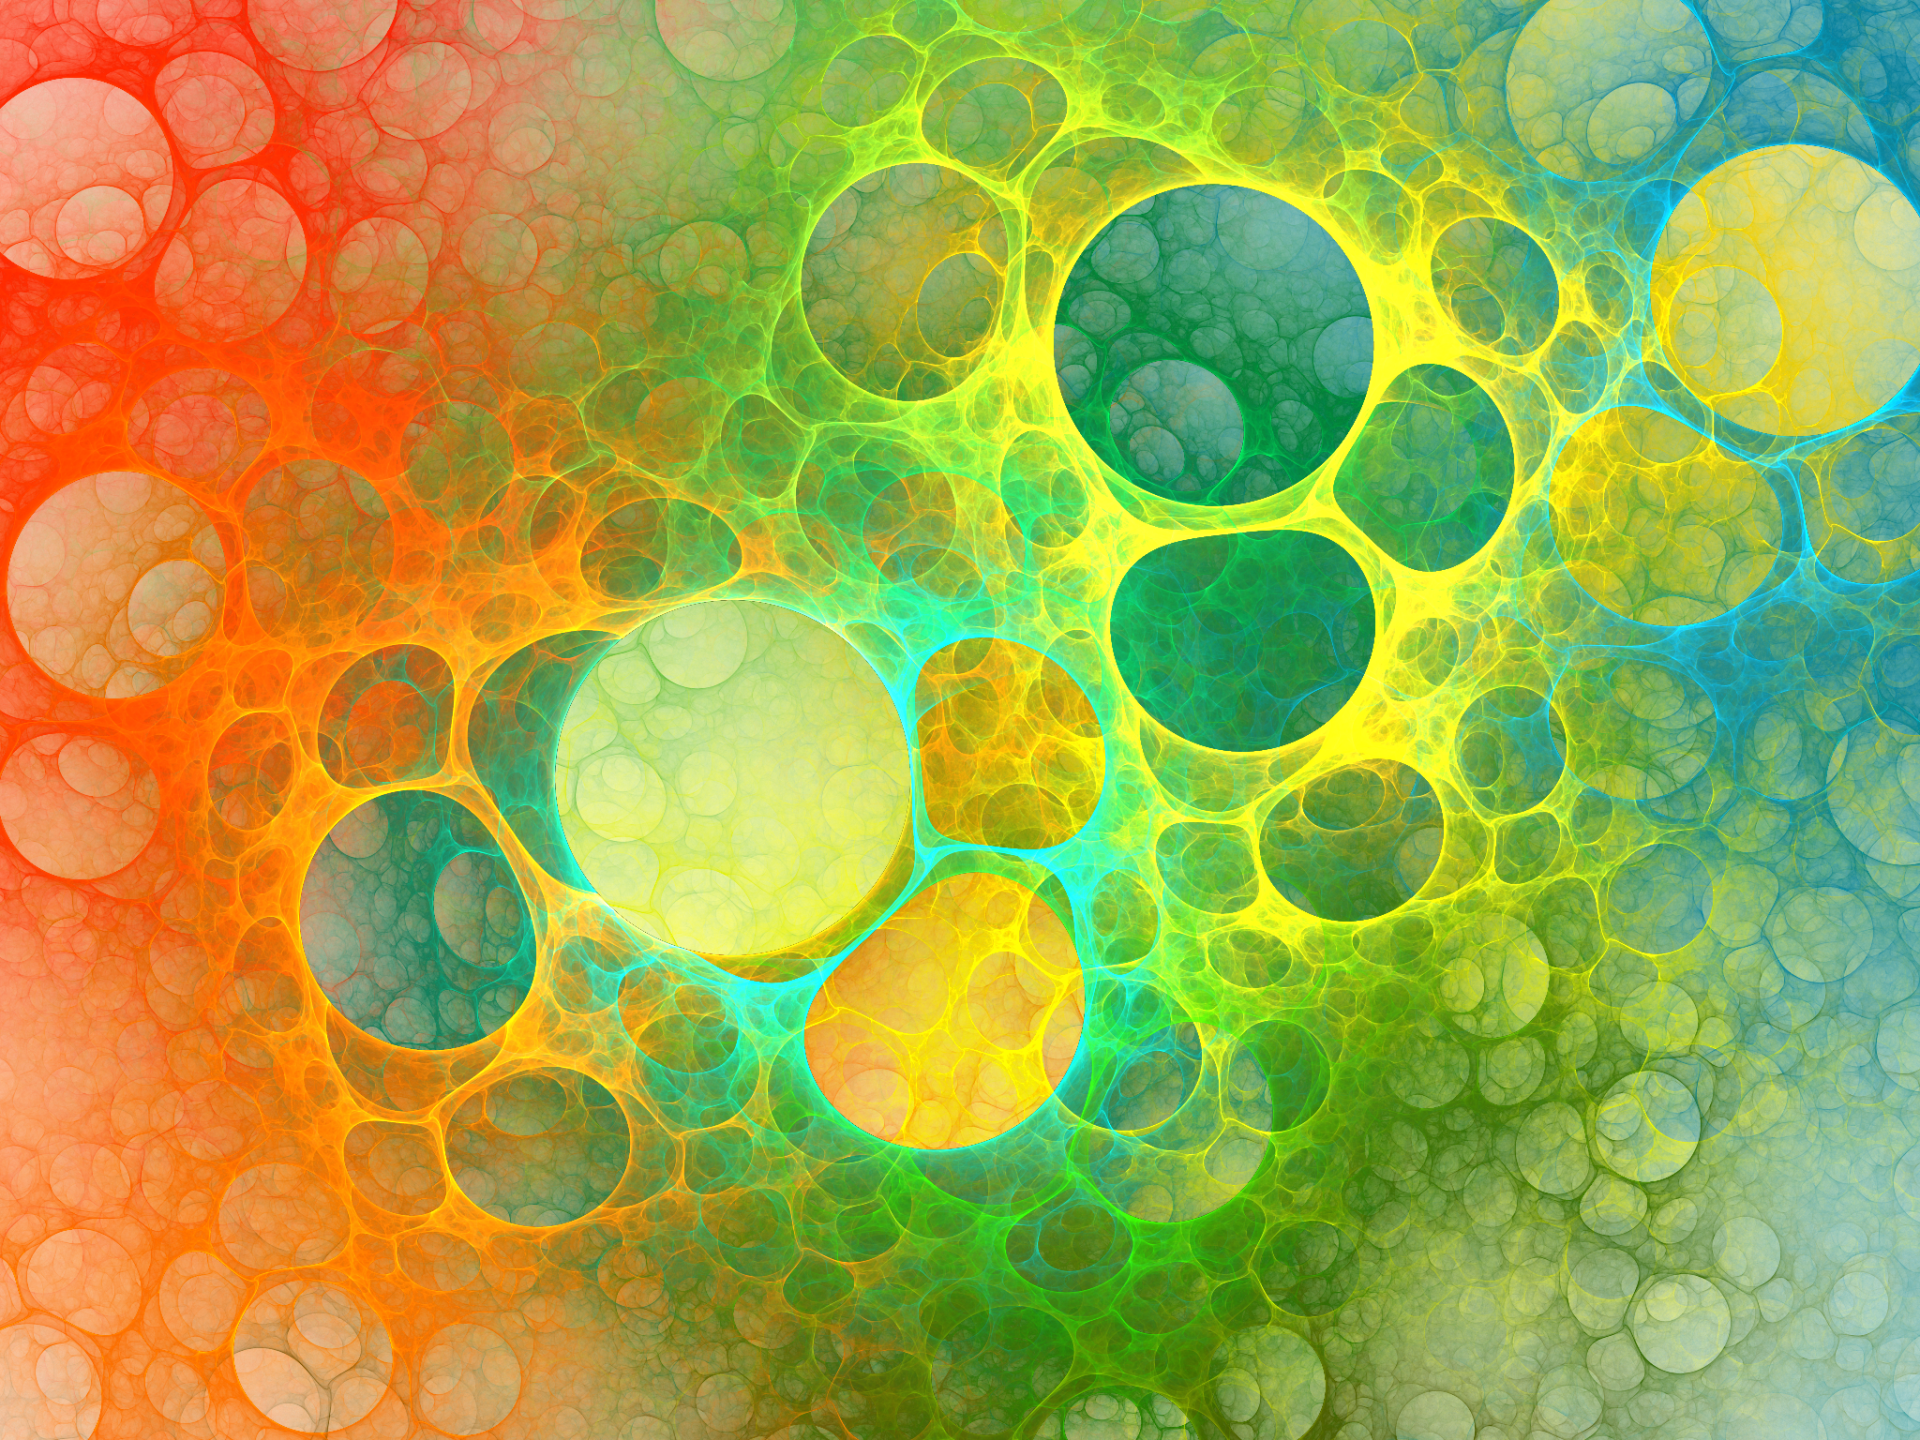 Abstract - Fractal  Abstract Apophysis (software) Colorful Bubble Wallpaper